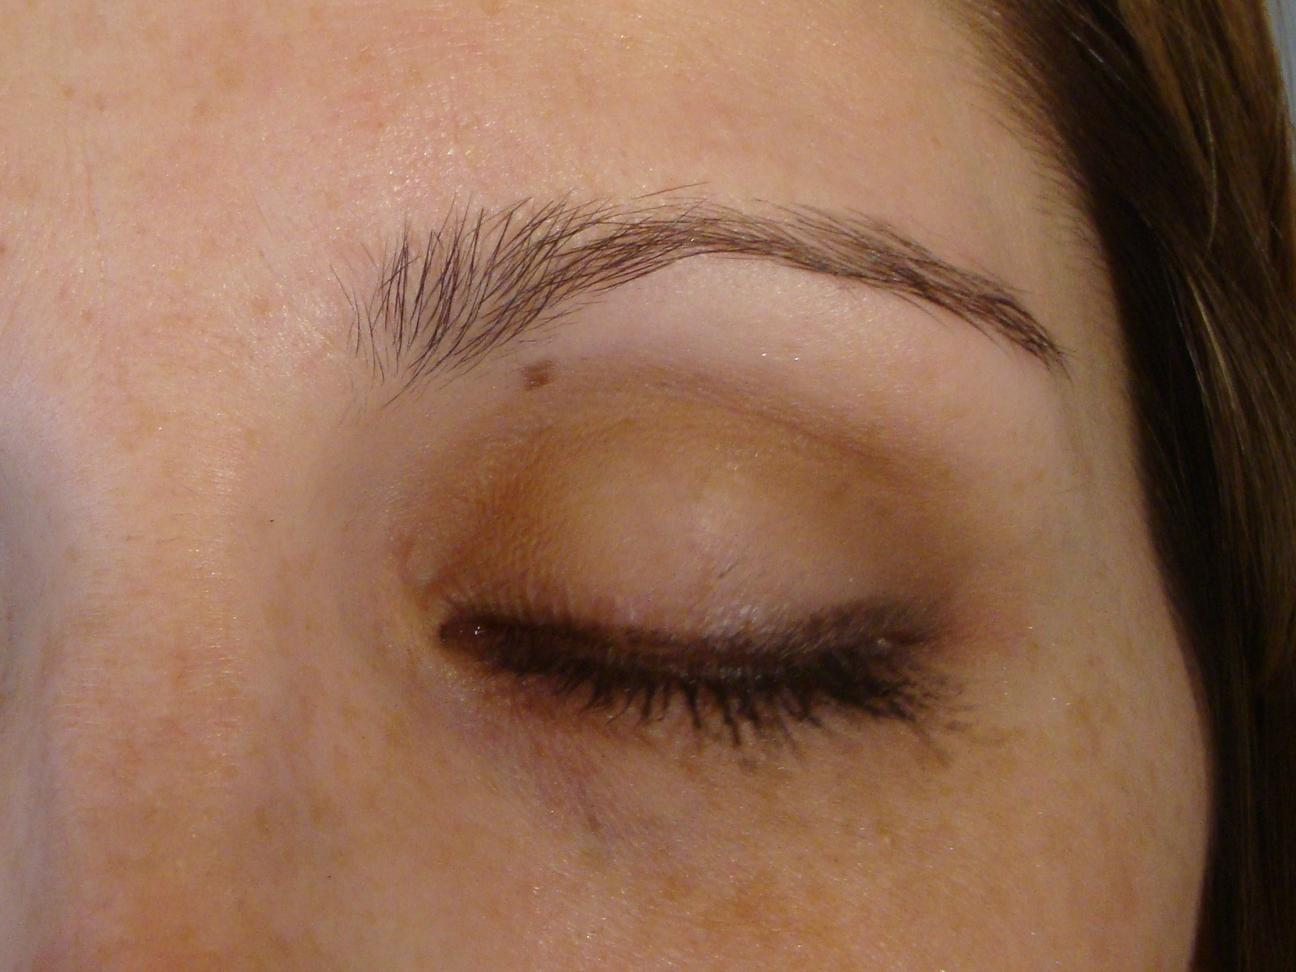 Red spot on eyelid, not a cut? | Yahoo Answers